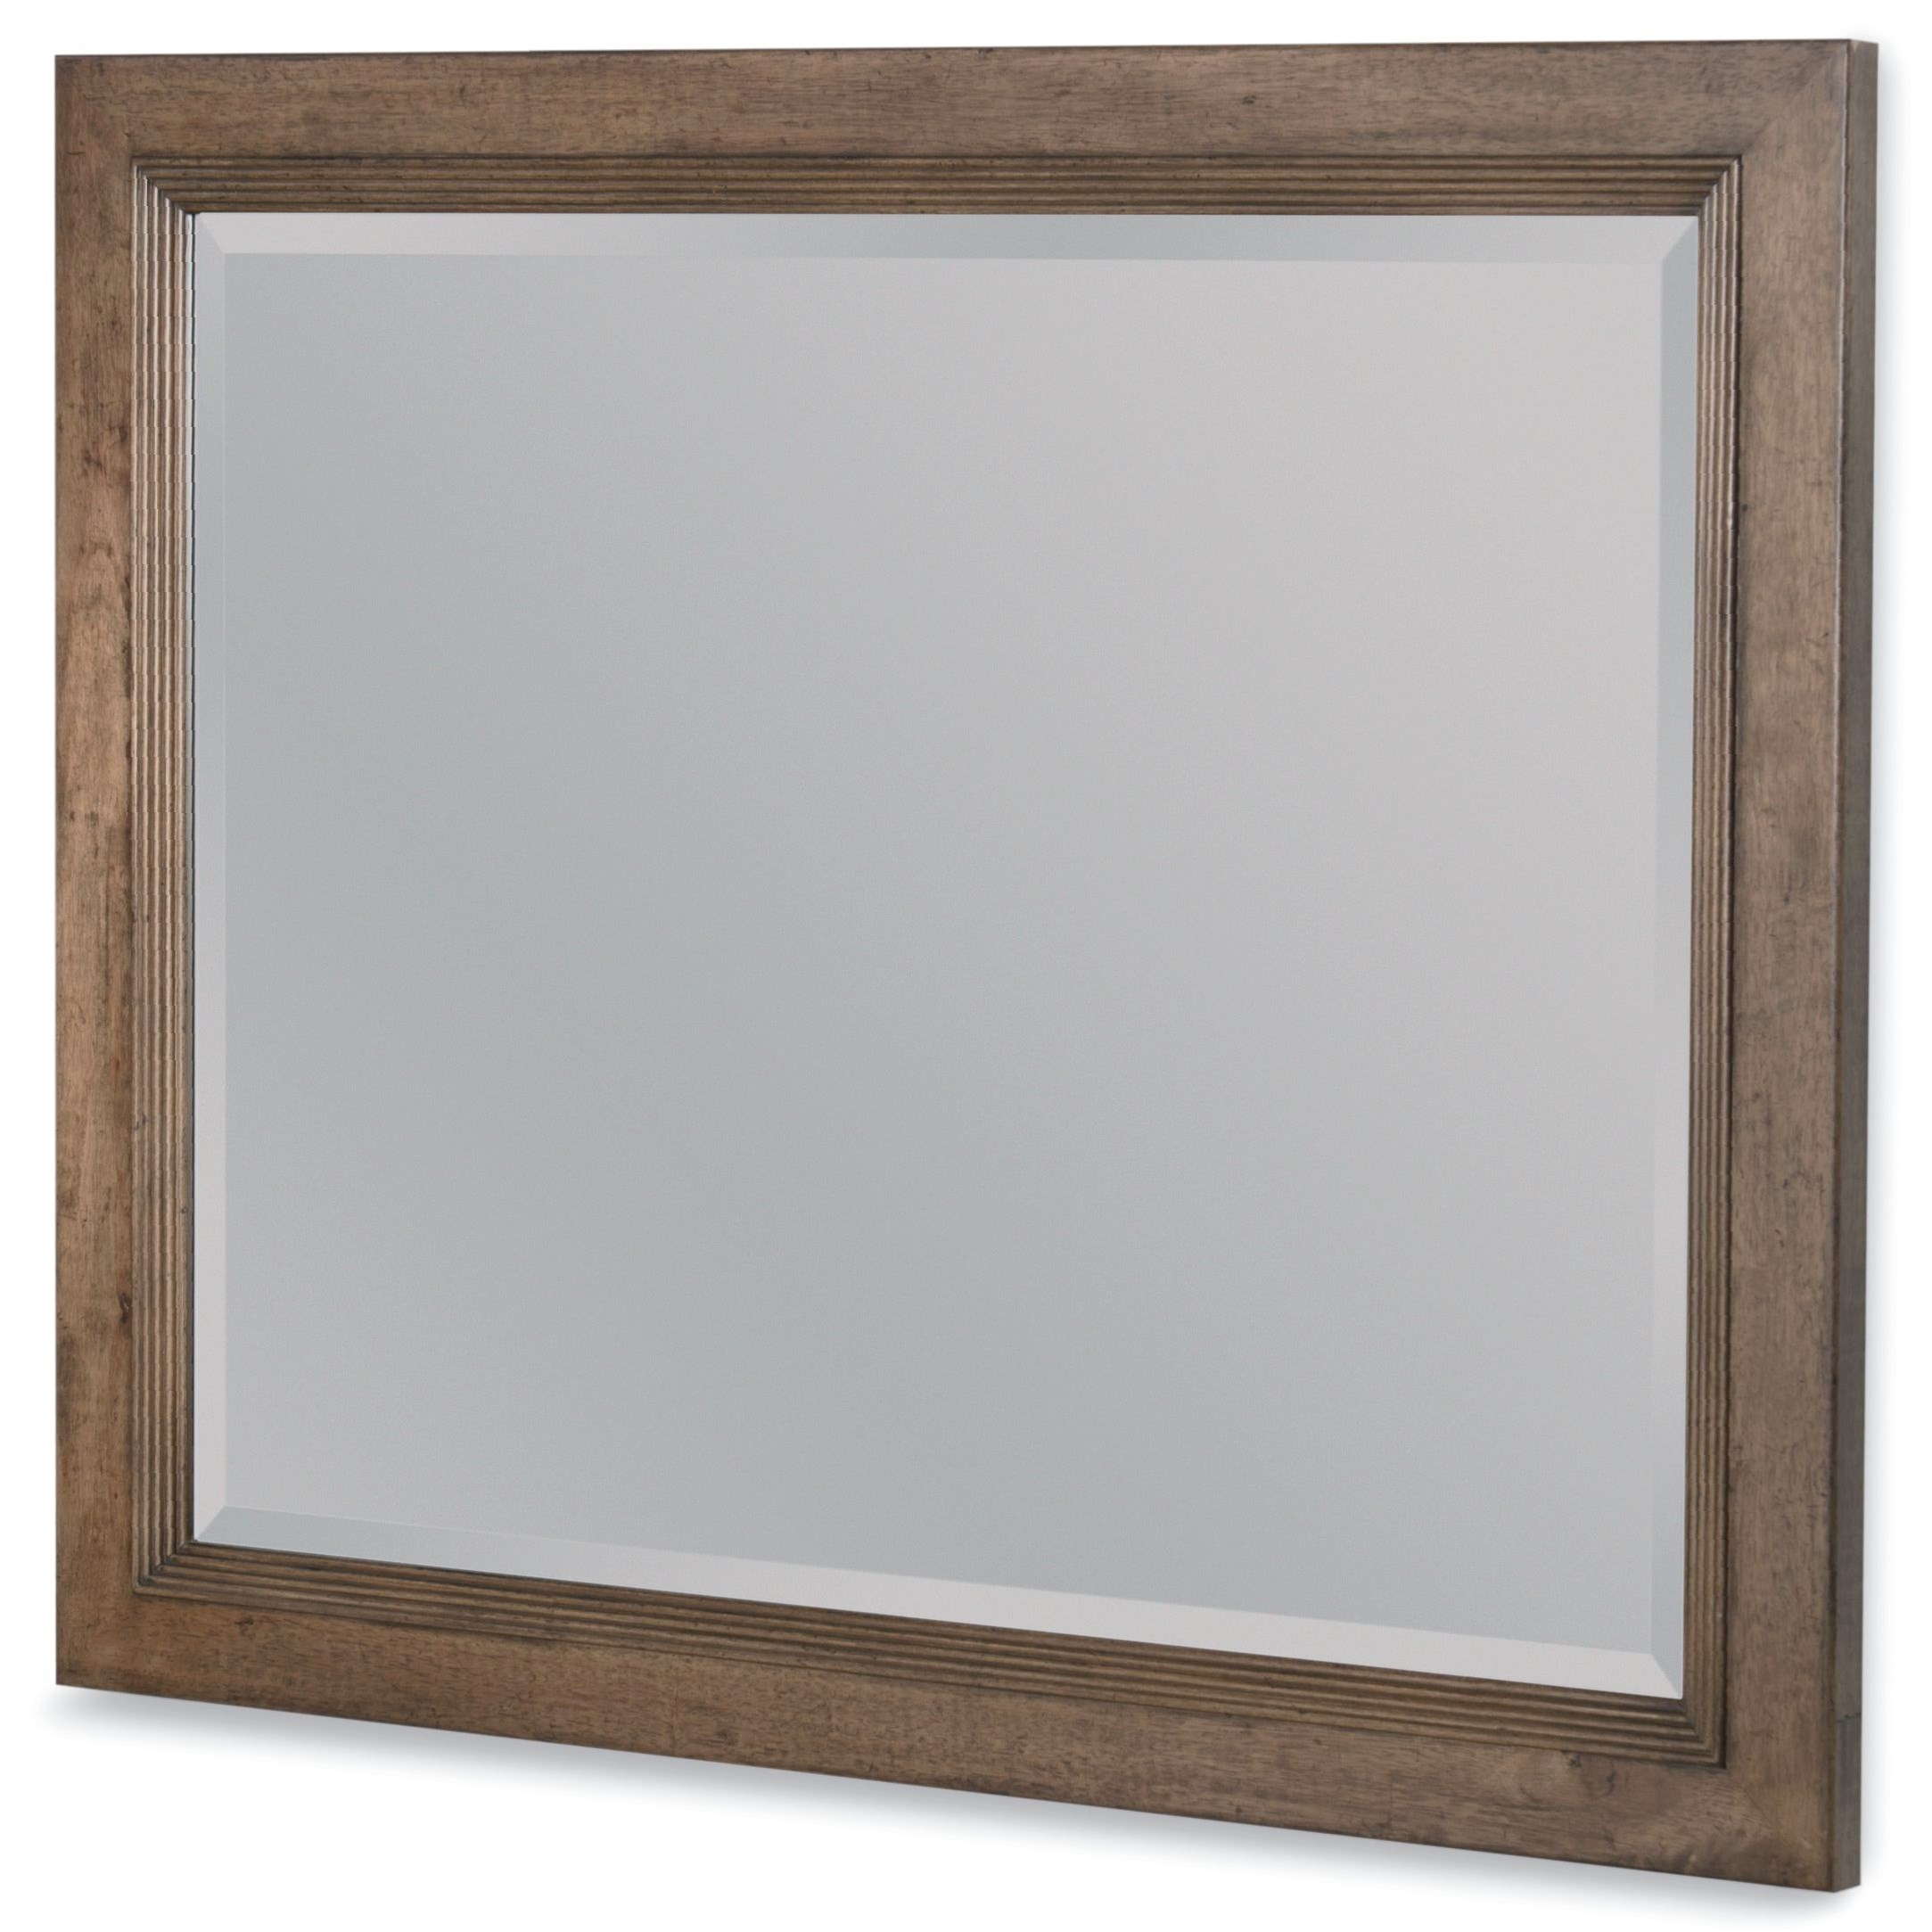 Forest Hills Dresser Mirror by Legacy Classic at Darvin Furniture